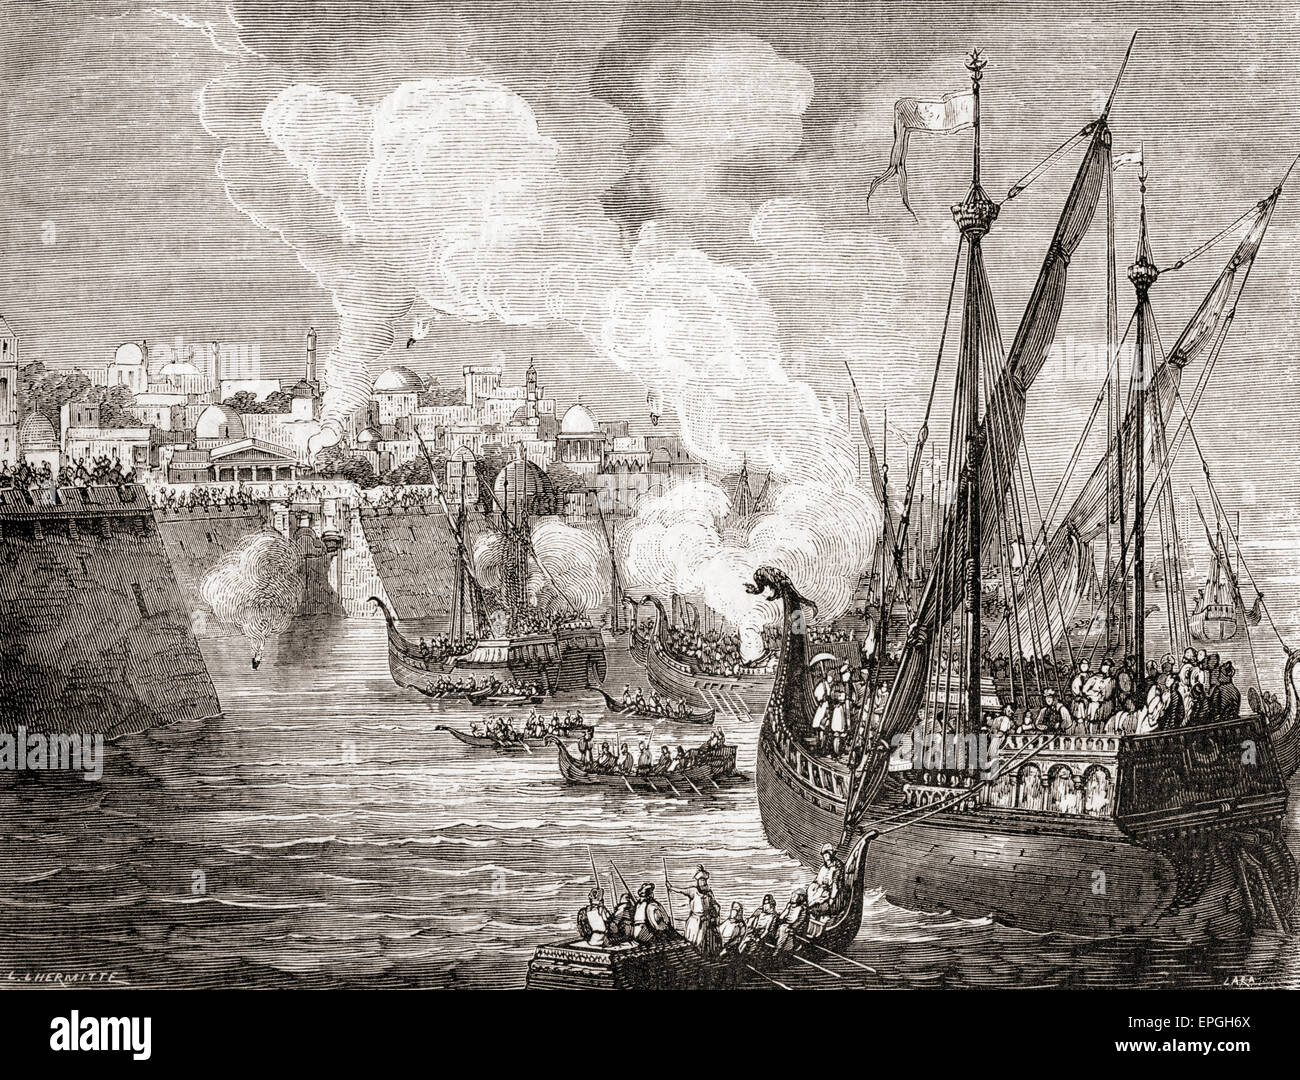 The siege of Constantinople in 1453 by Ottoman Sultan Mehmed II. - Stock Image